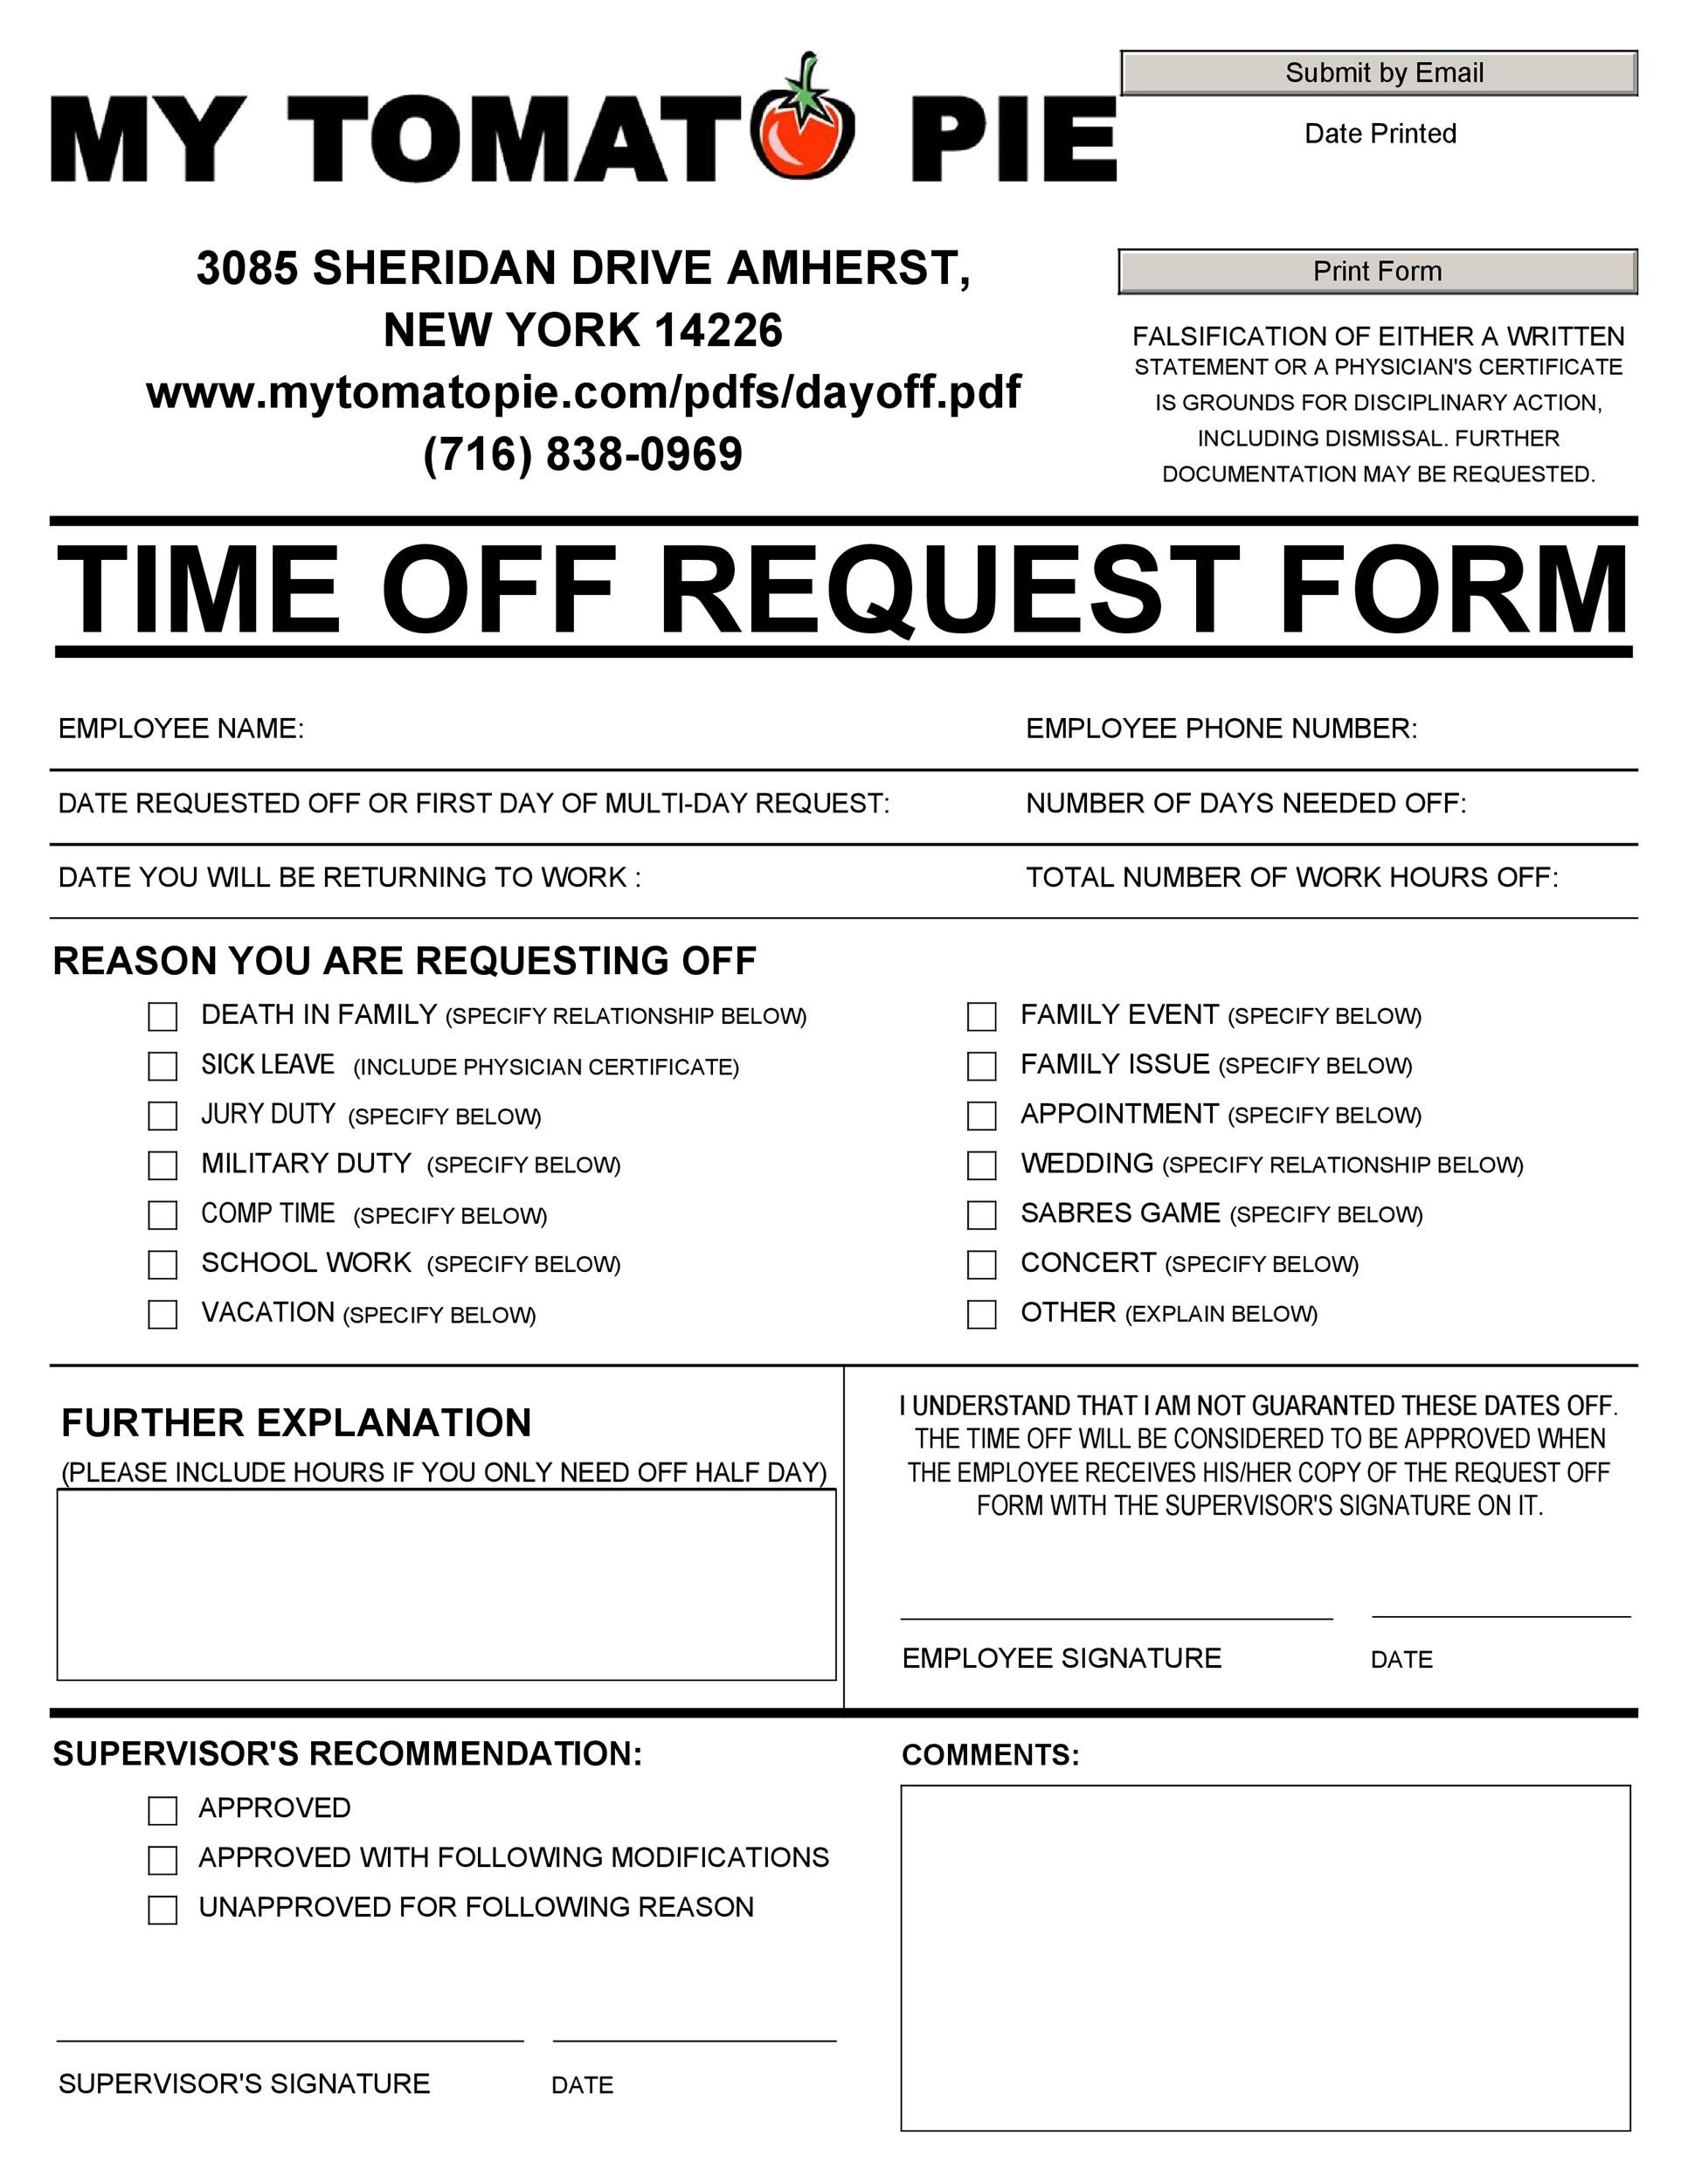 40+ Effective Time Off Request Forms  Templates - Template Lab